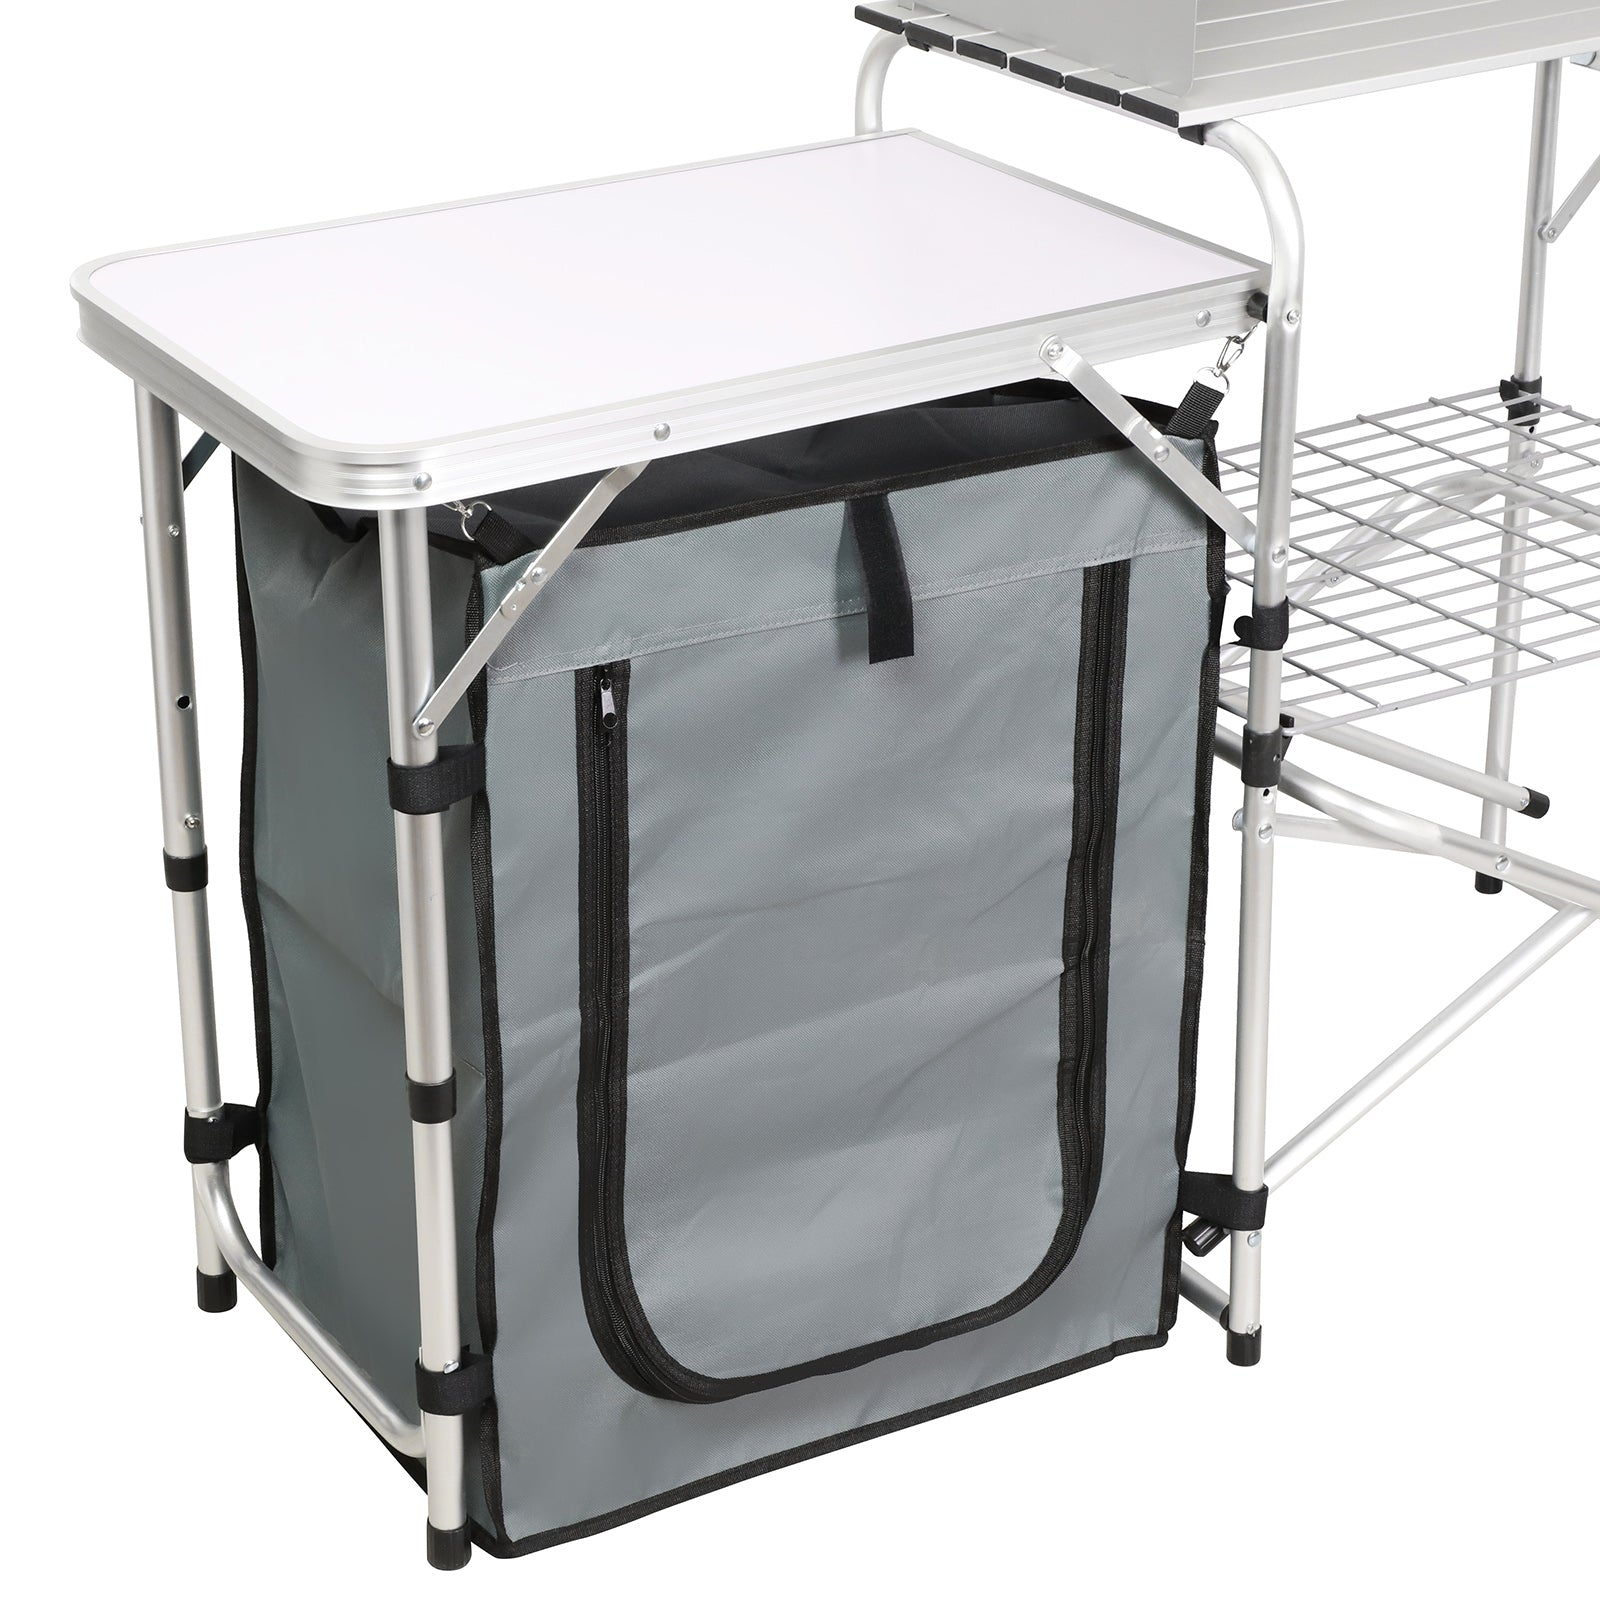 Camping Folding Serving Table Potable All-in- One 2-Tier Practical Kitchen Table w/Side Prep Panel- Aluminum Frame